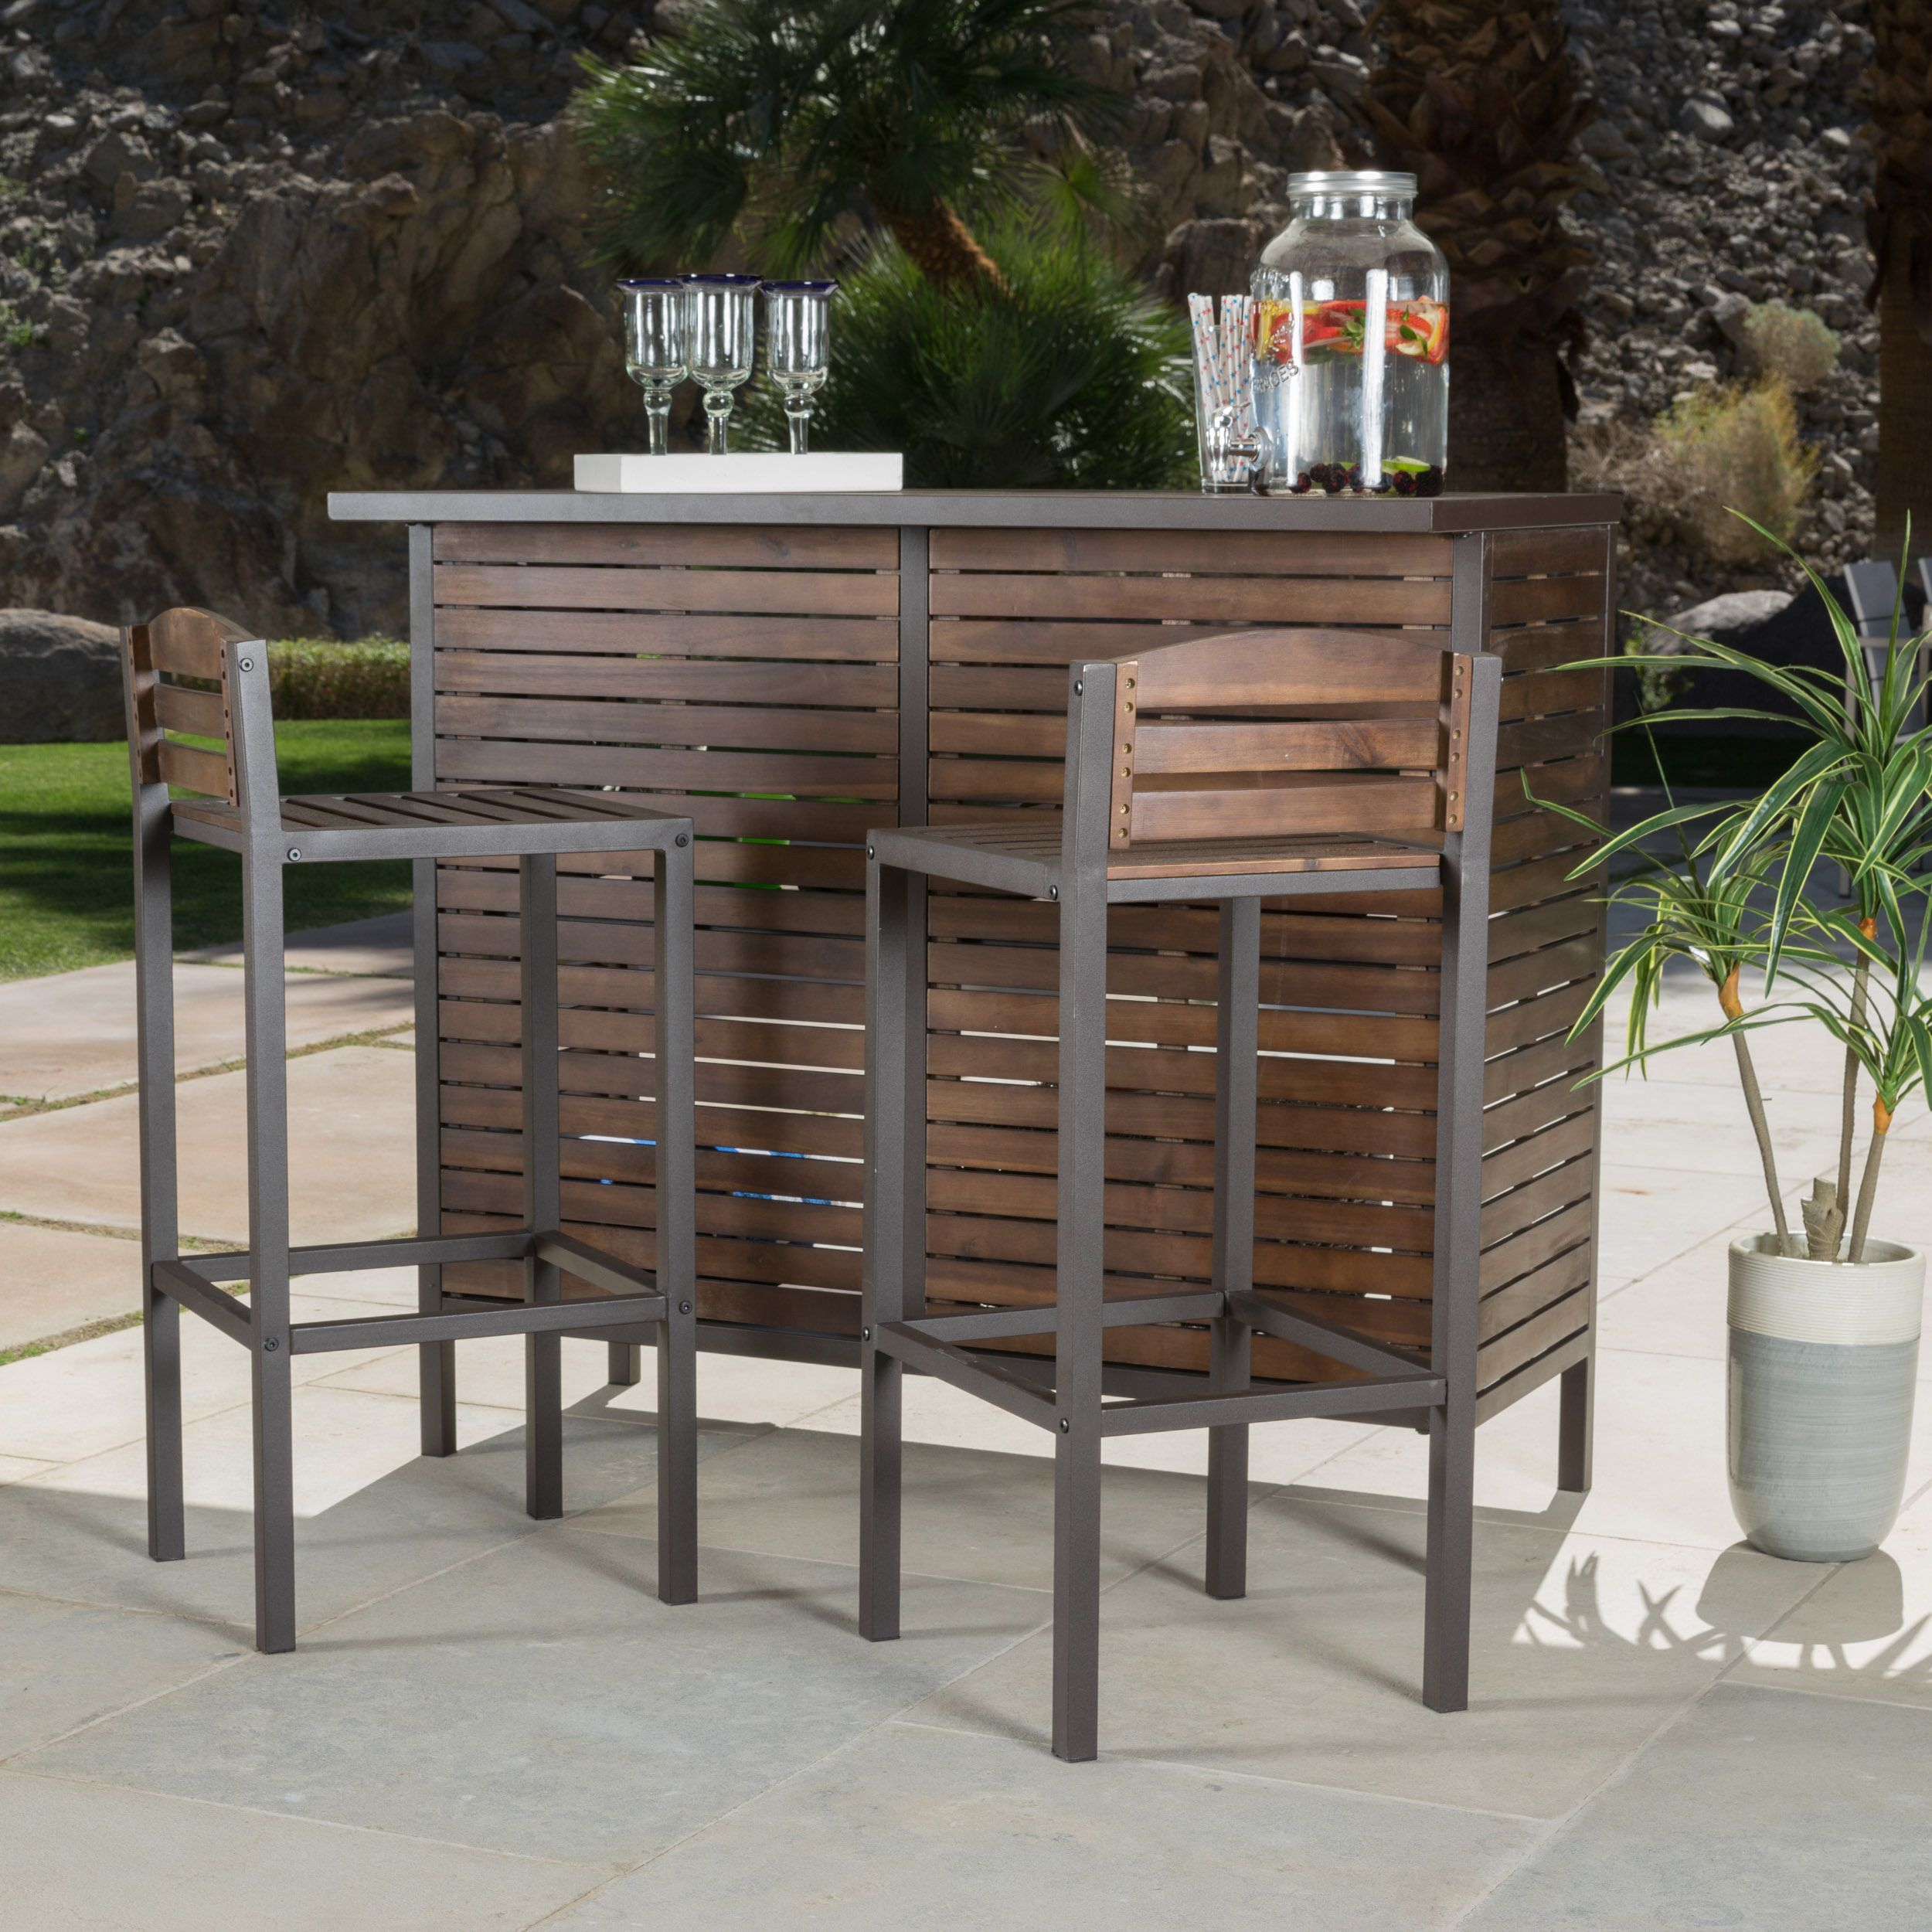 Milos outdoor 3 piece acacia wood bistro bar set by christopher knight home brown size 3 piece sets patio furniture